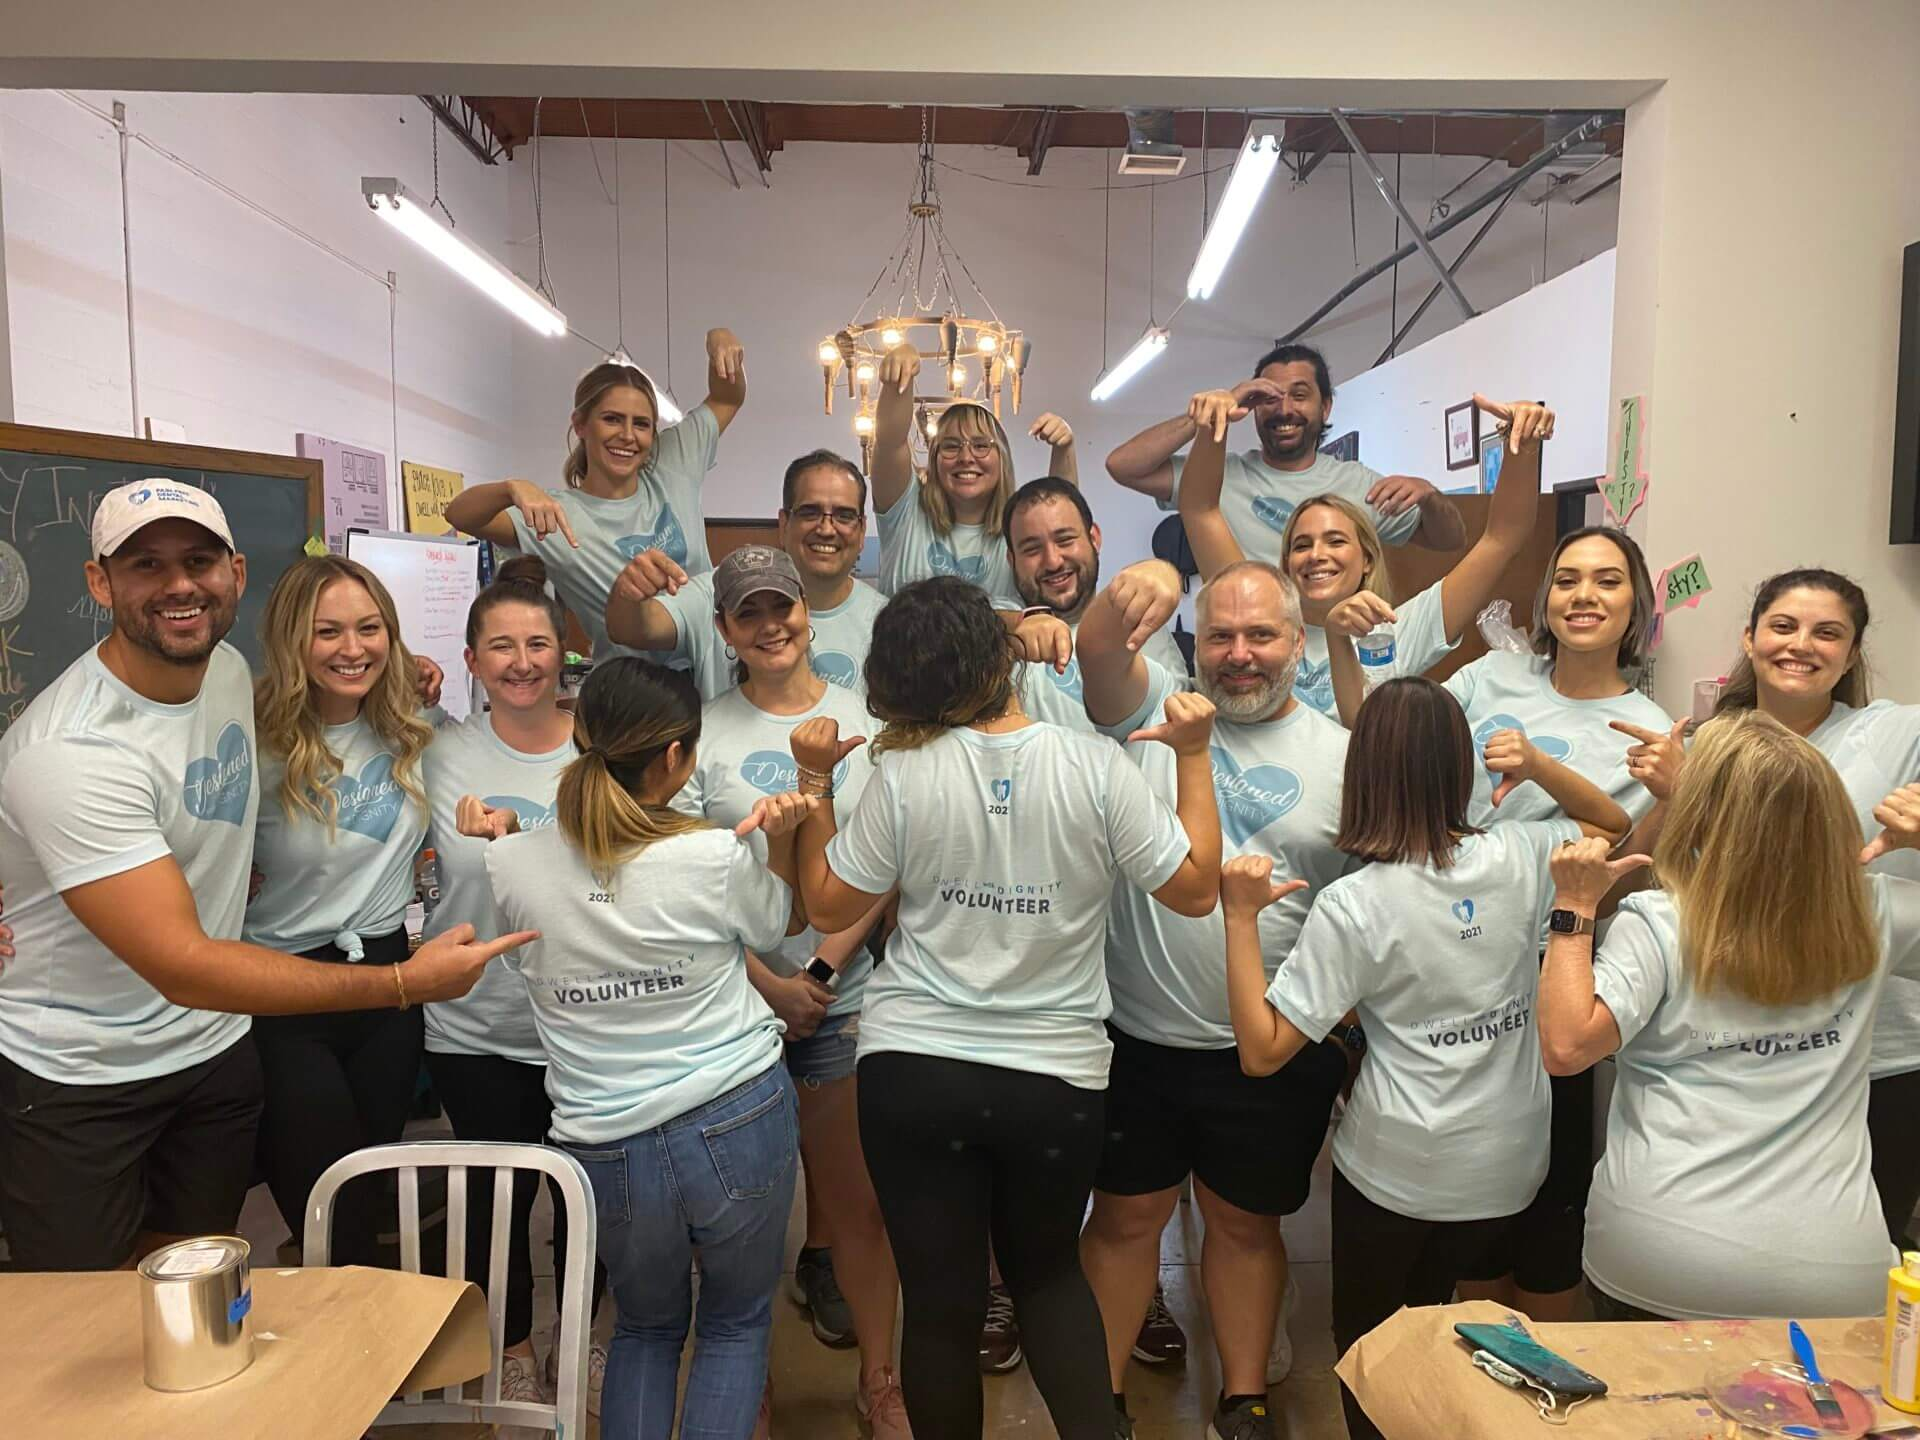 PF Dental Marketing team volunteers at Dwell with Dignity